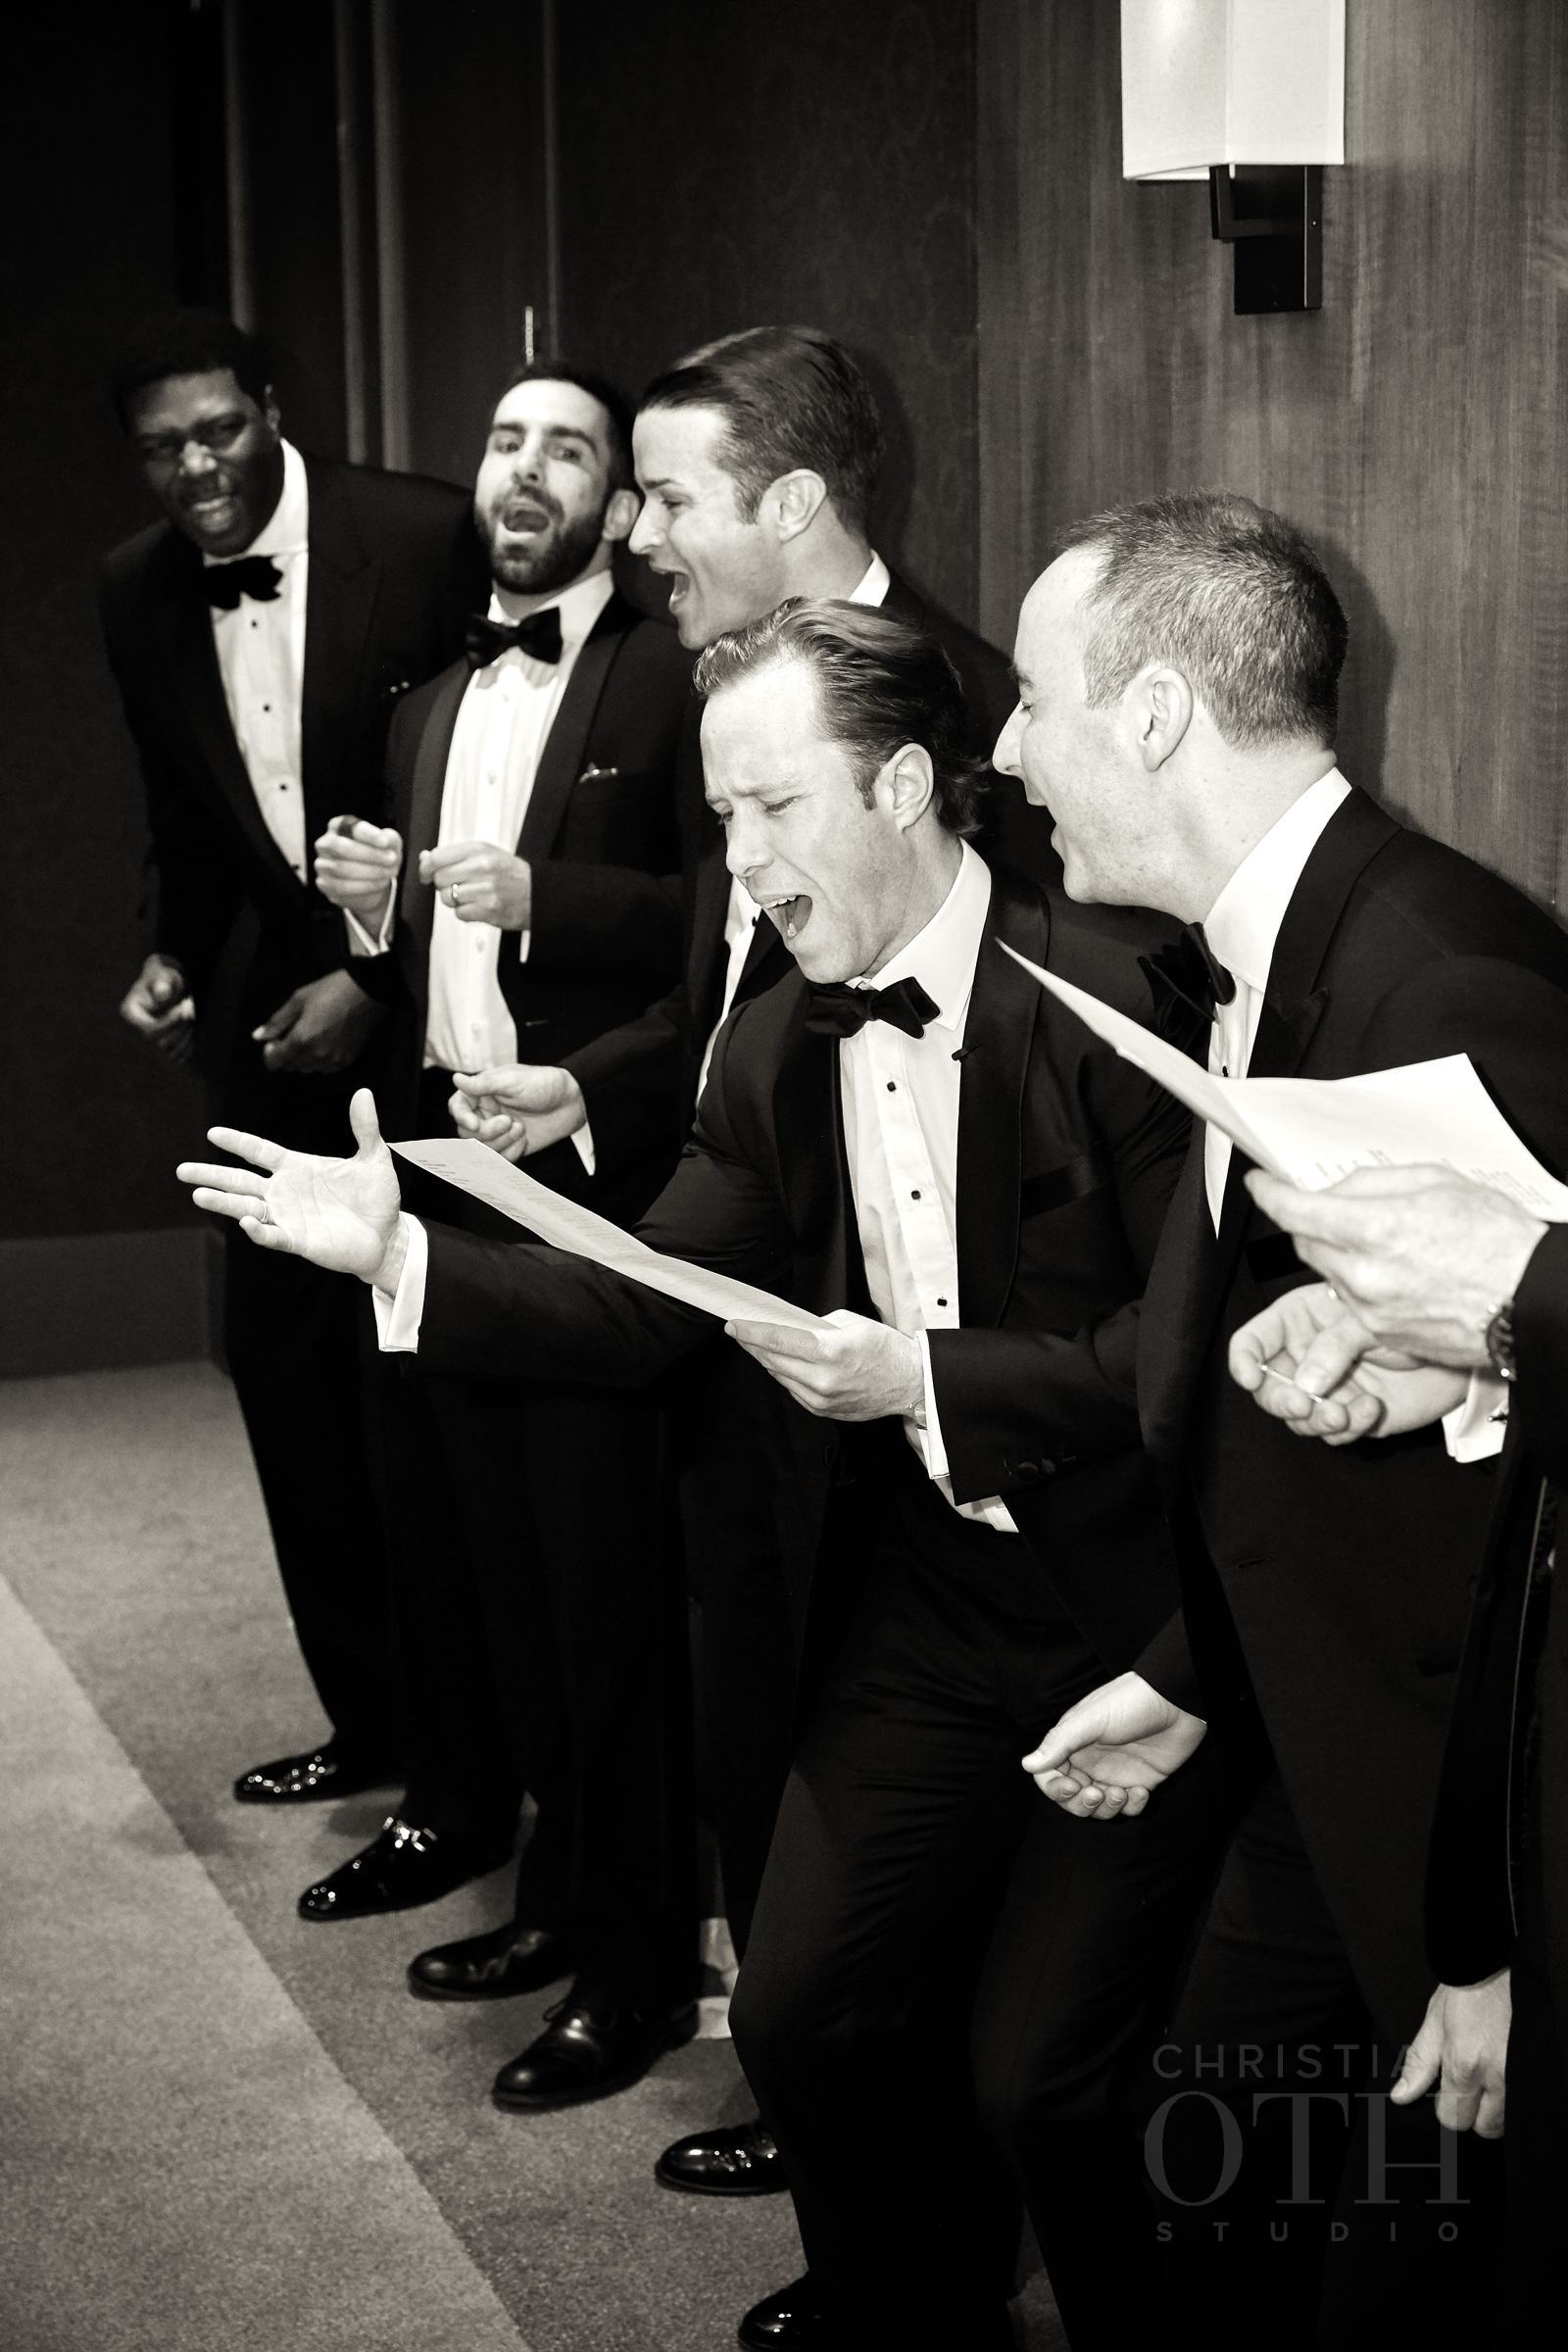 The groomsmen sang as part of the door games.  Photo by Glen Allsop for Christian Oth Studio.